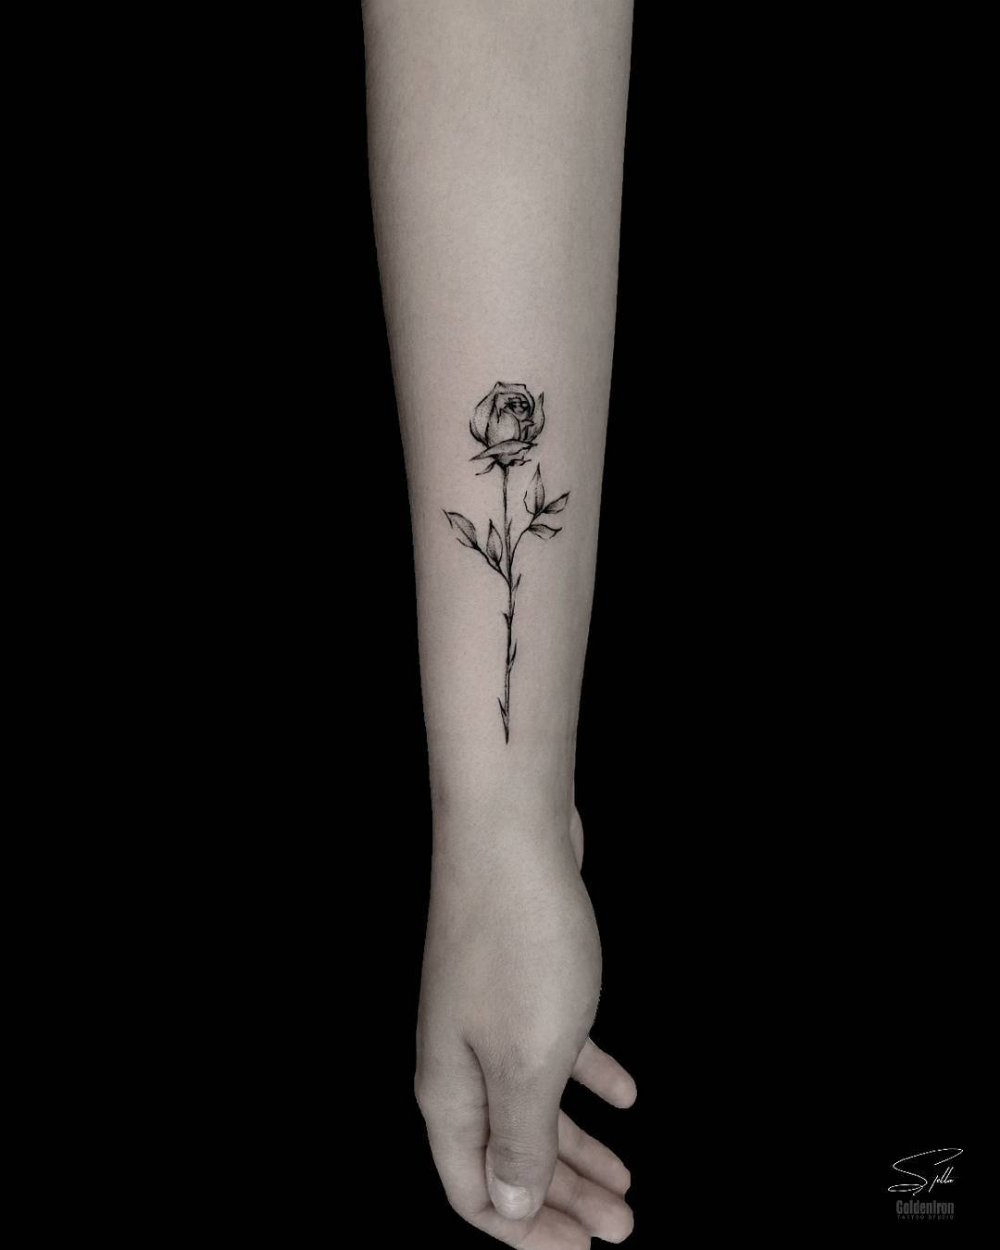 Pin By Rosina Evangoline Cotton On Tattoos Arm Tattoos For Women